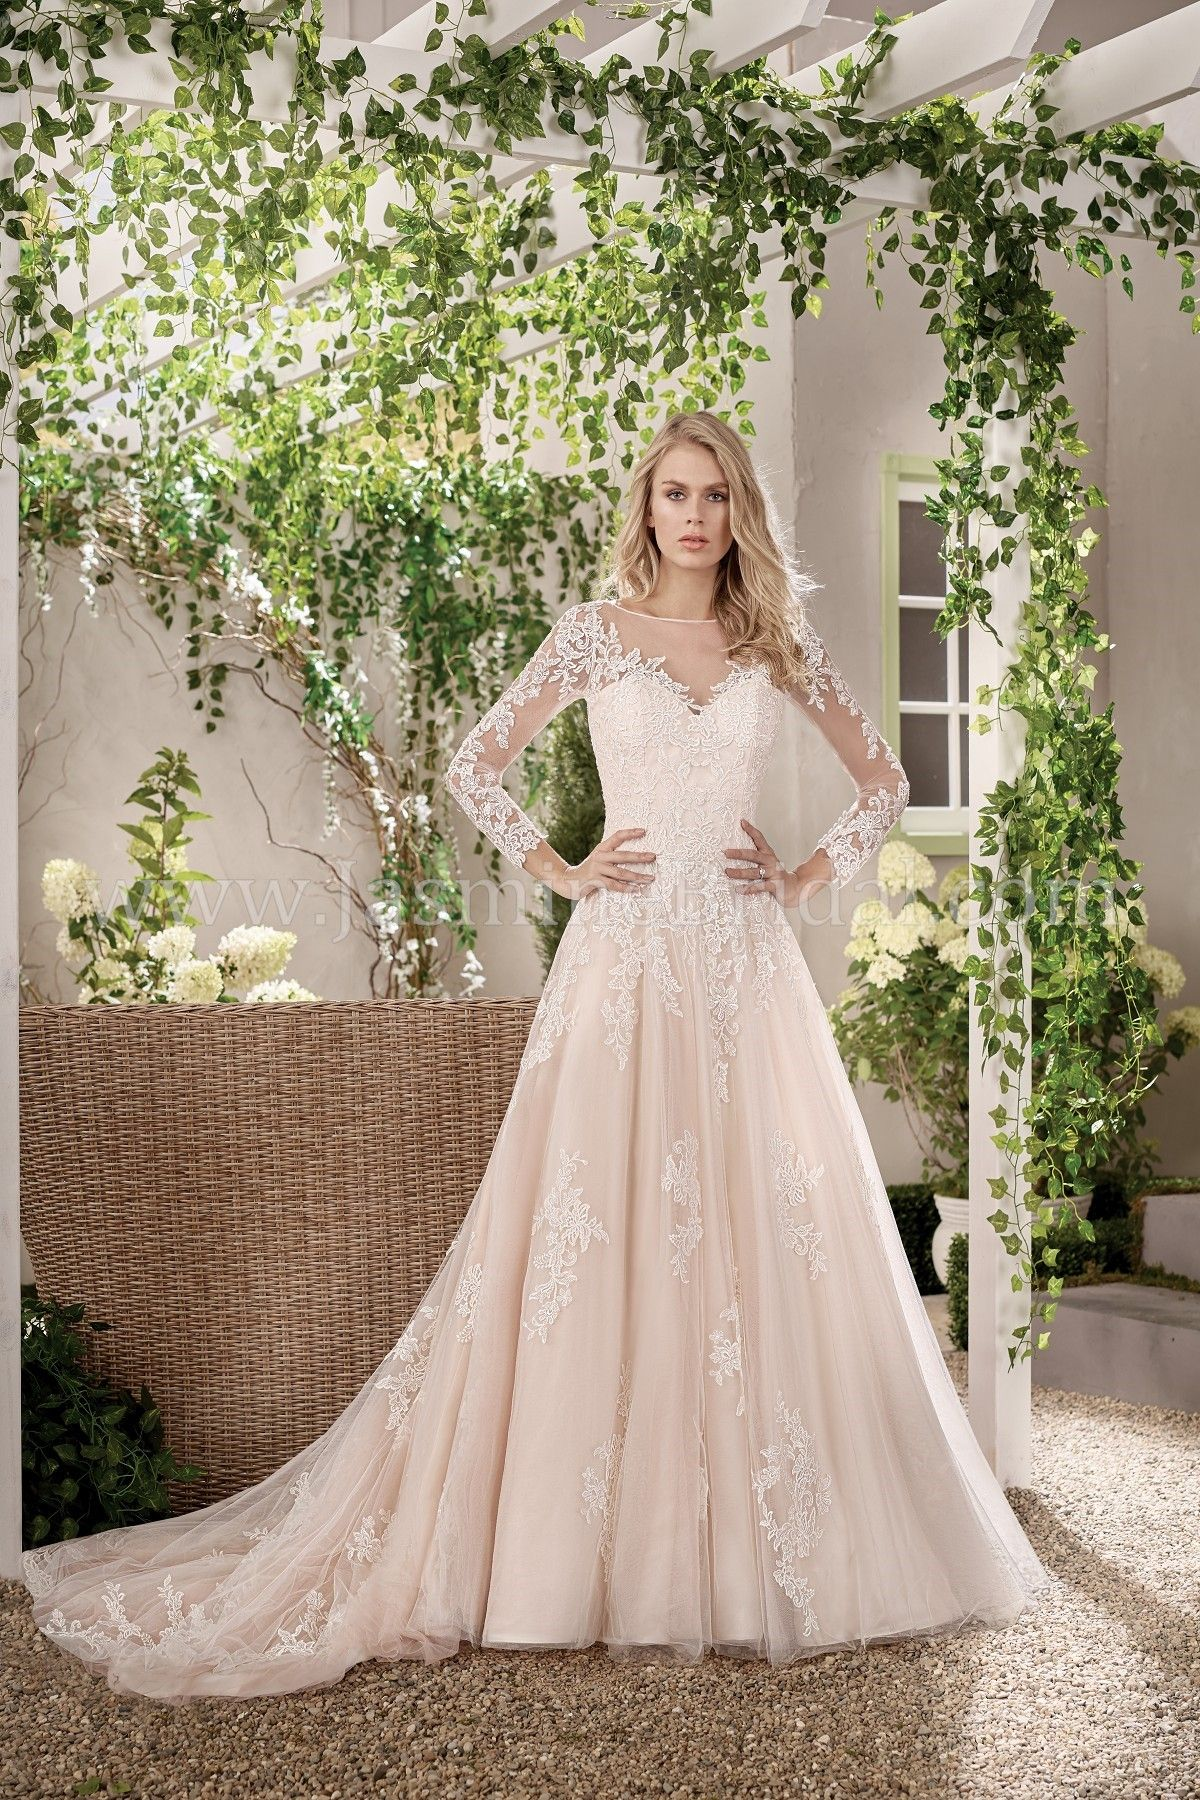 810fed6000 SEE IF THIS DRESS IS AT BRIDES AND MORE IN MECHANICVILLE!!! Jasmine Bridal